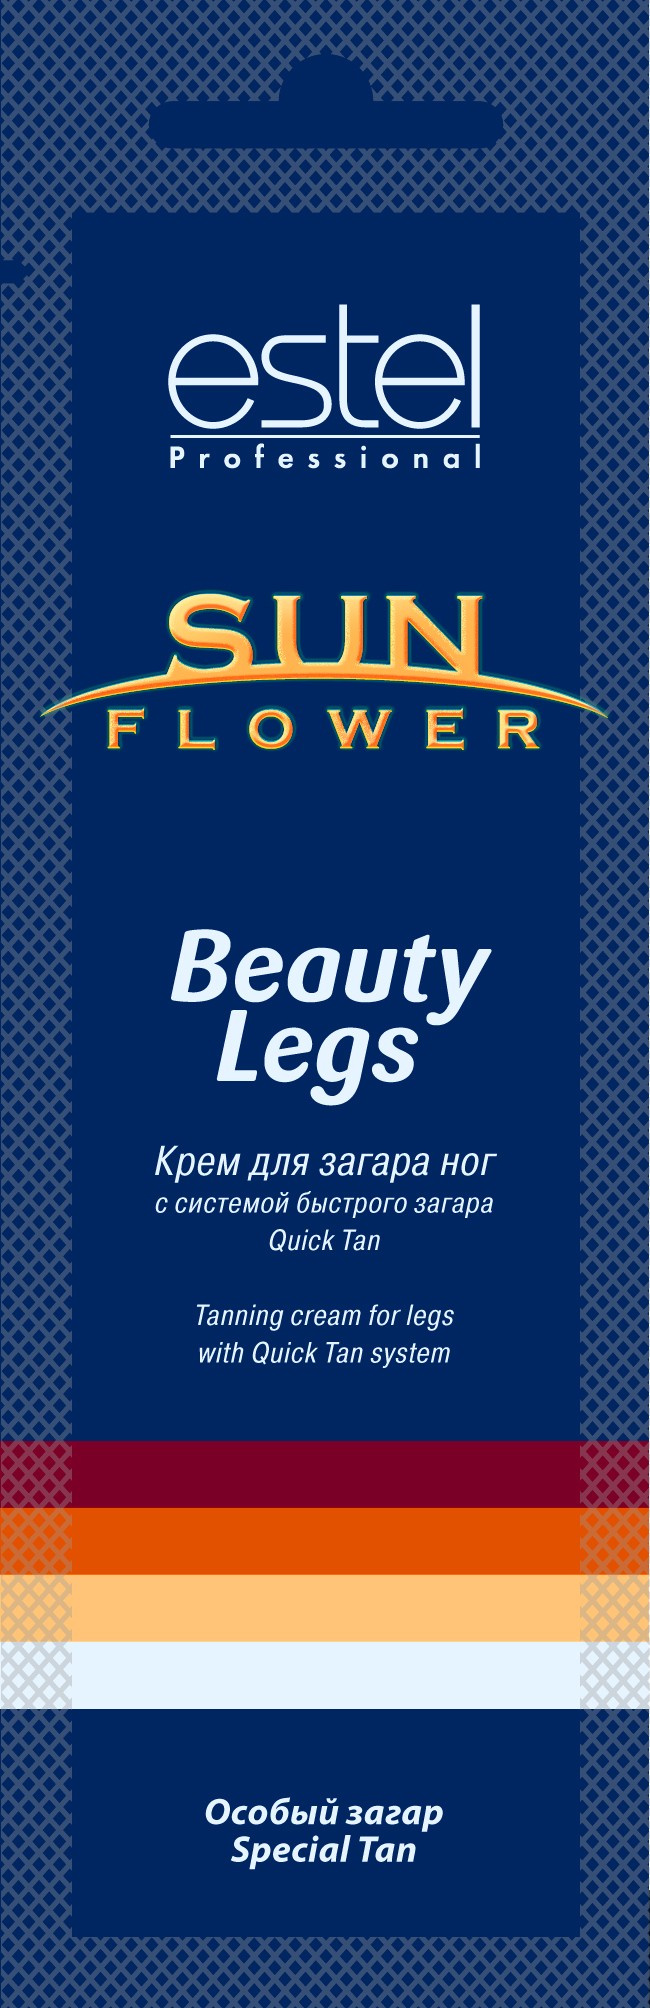 ESTEL PROFESSIONAL ���� ��� ������ ��� � ������� / Sun Flower Beauty Legs 15��